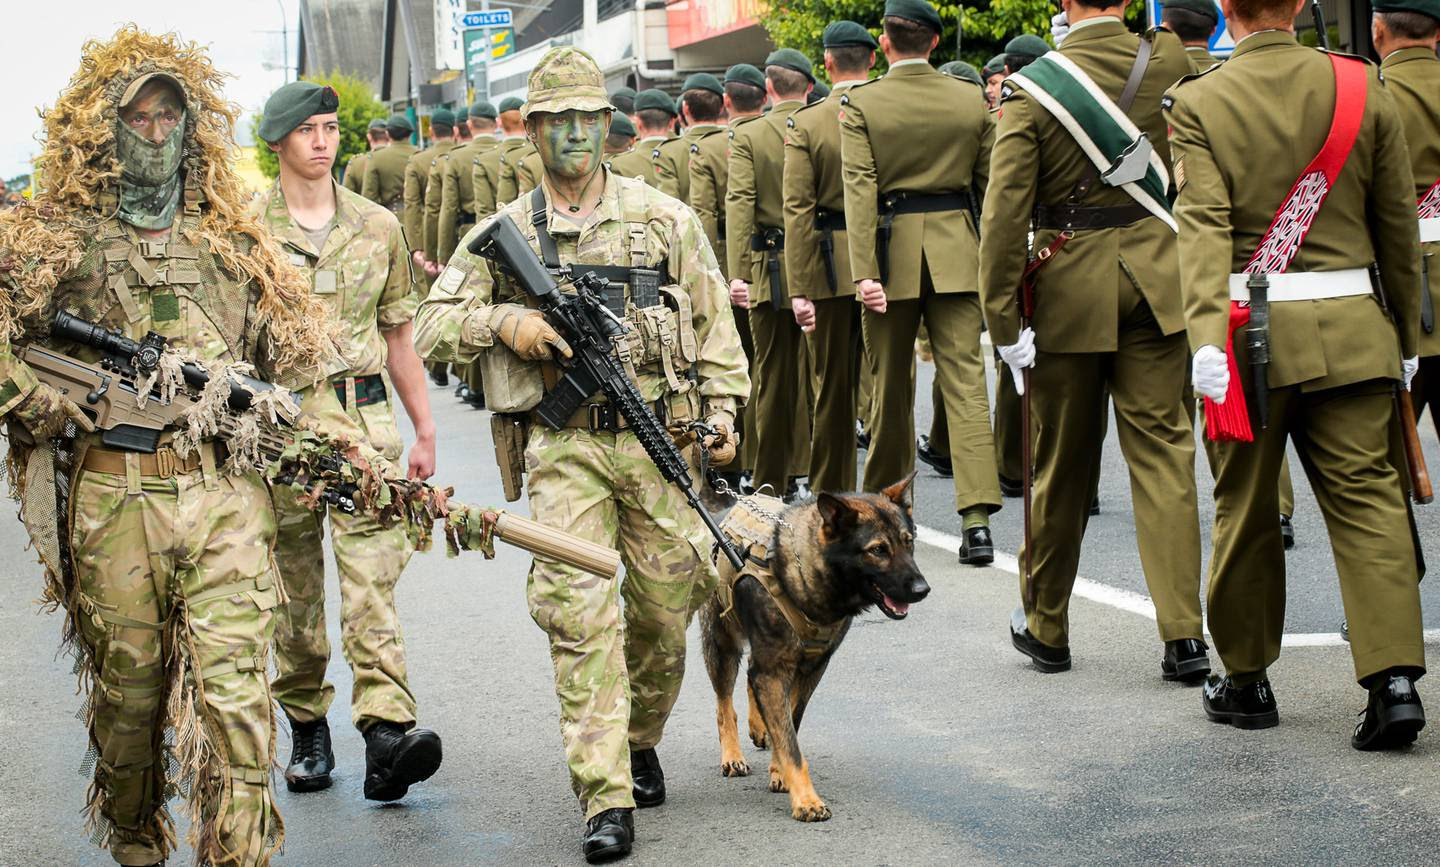 About 100 soldiers, including those carrying arms, marched down Dannevirke's main street as part of the charter parade.